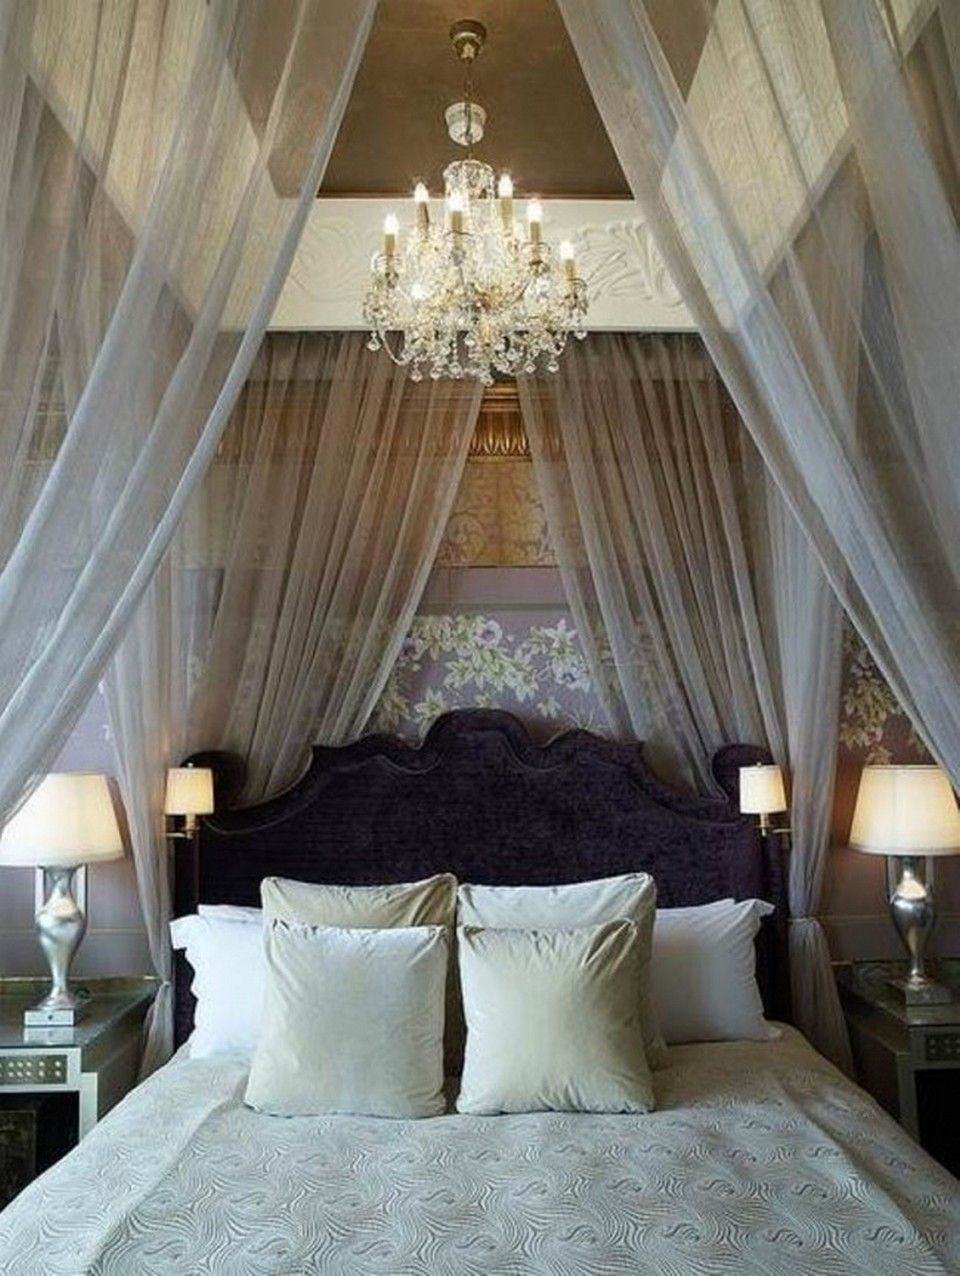 Bedroom Design Ideas On A Budget Alluring 99 Brilliant Romantic Bedroom Design Ideas On A Budget  Ideas Design Decoration